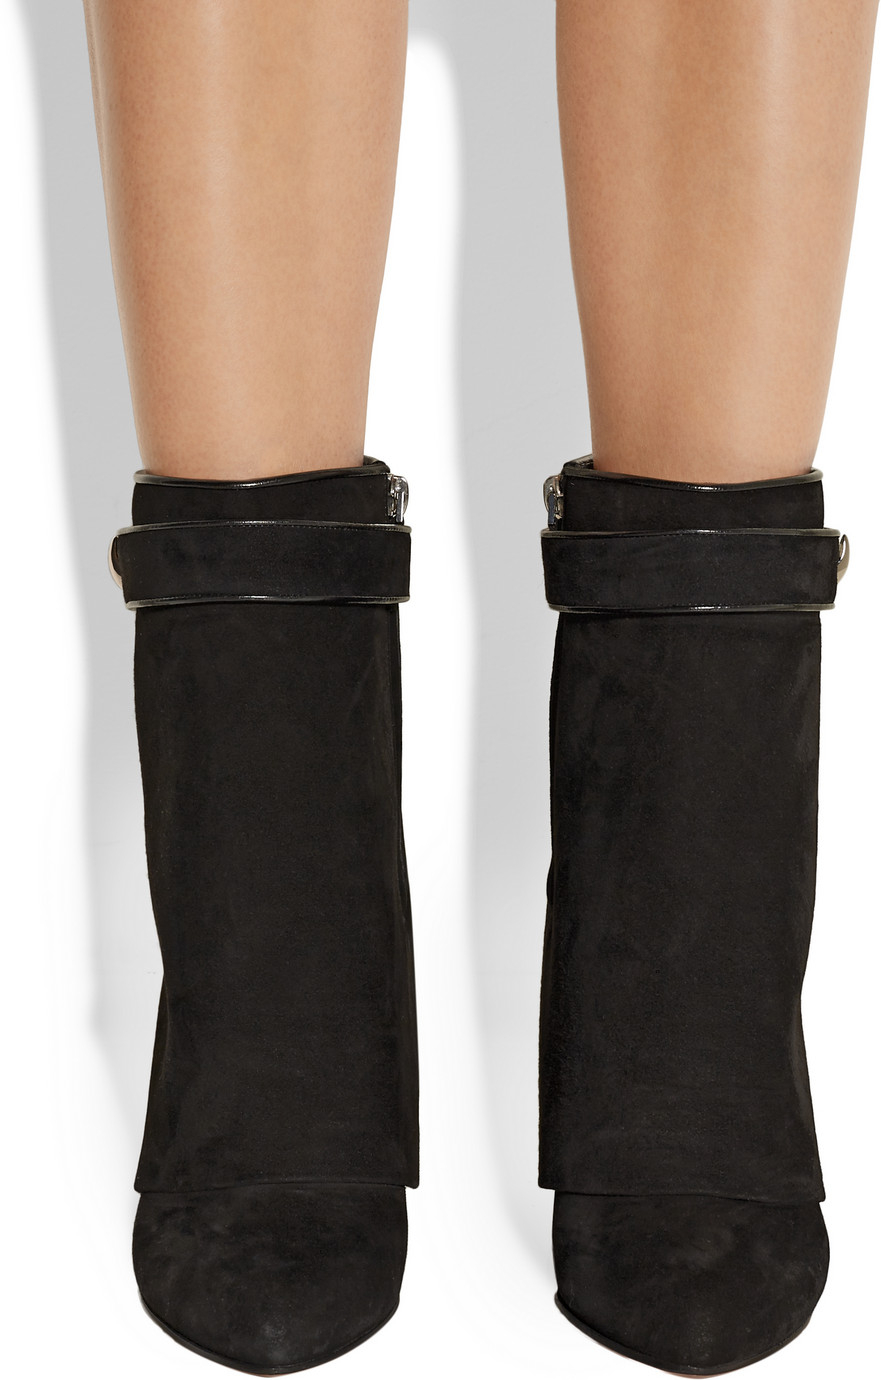 Lyst - Givenchy Shark Lock Black Suede Wedge Ankle Boots in Black facb746956